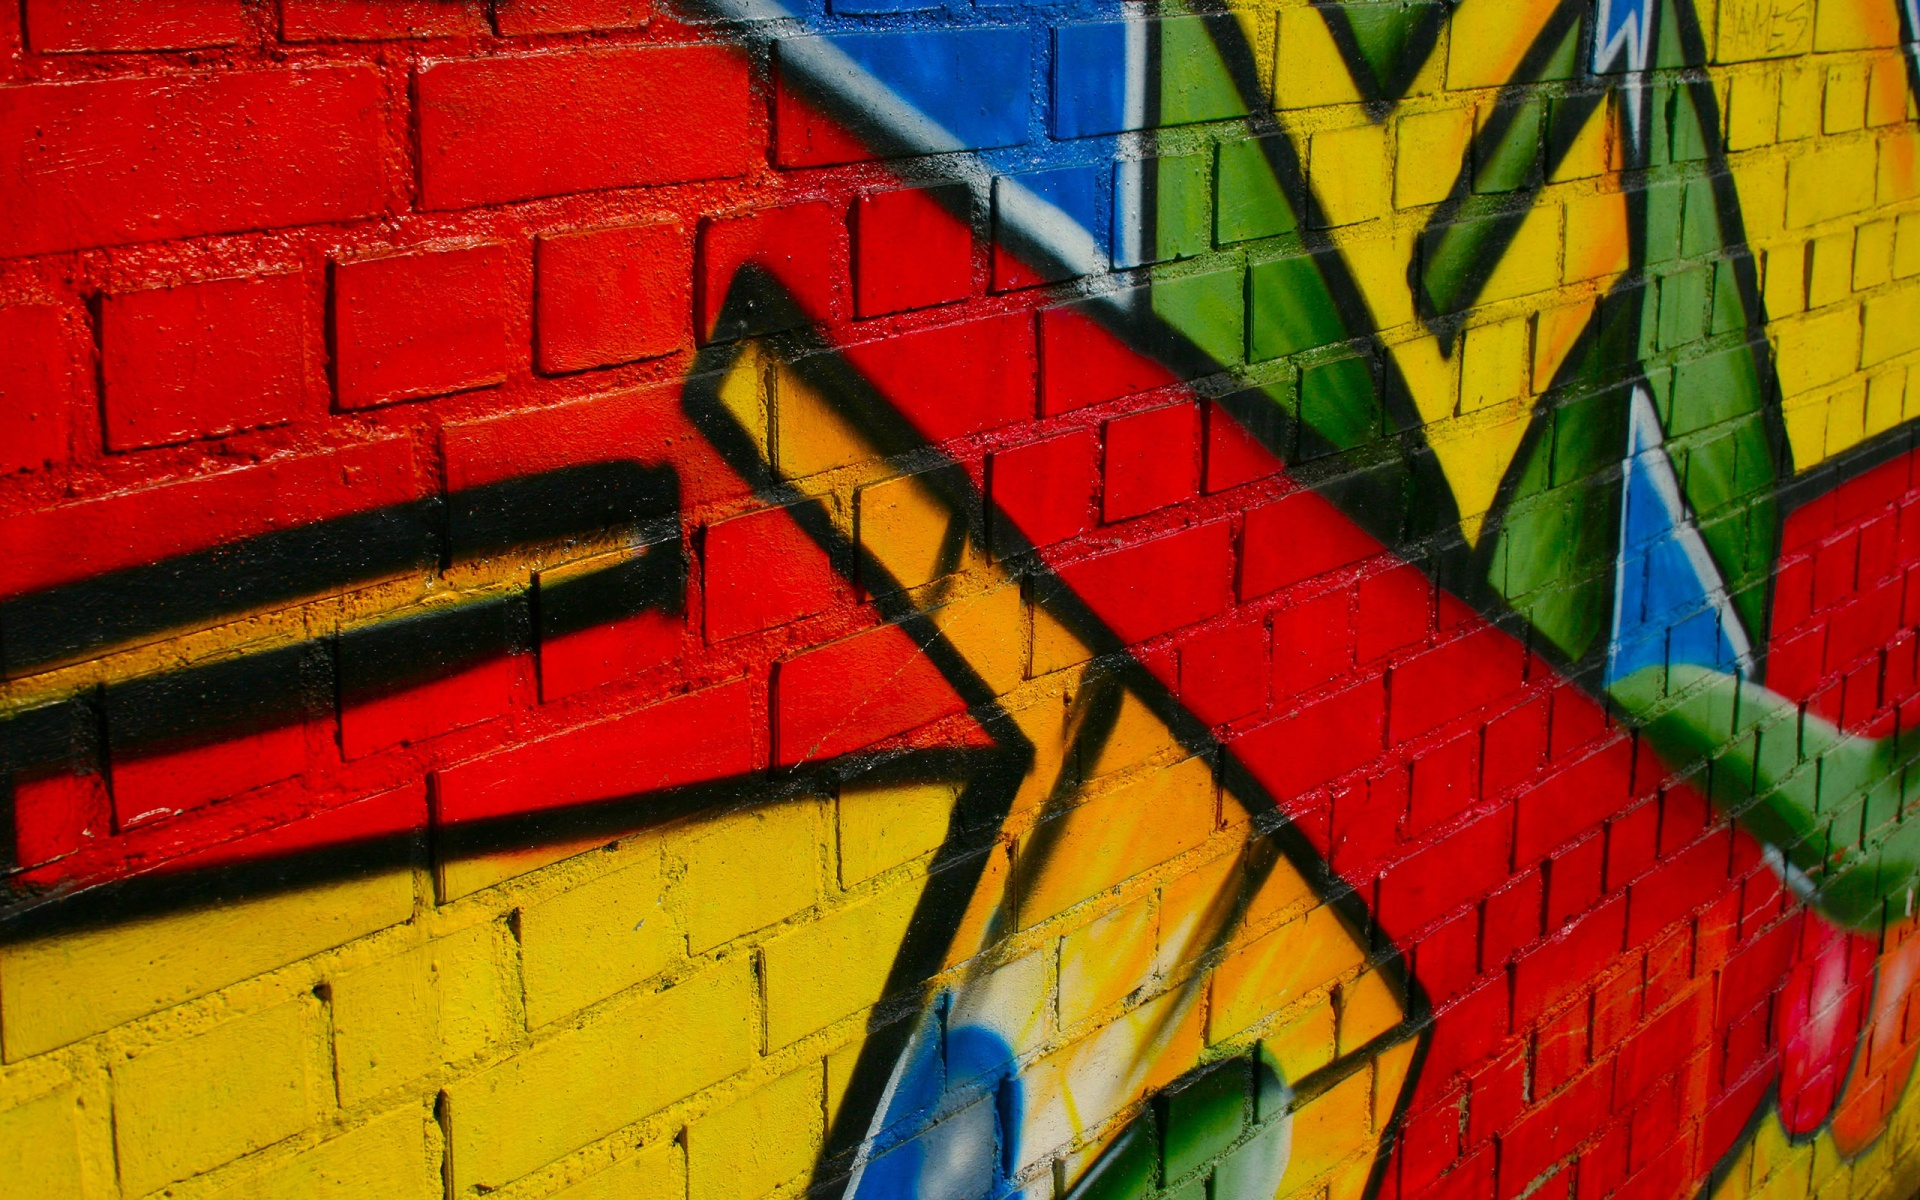 Graffiti on wall wallpapers and images   wallpapers pictures photos 1920x1200